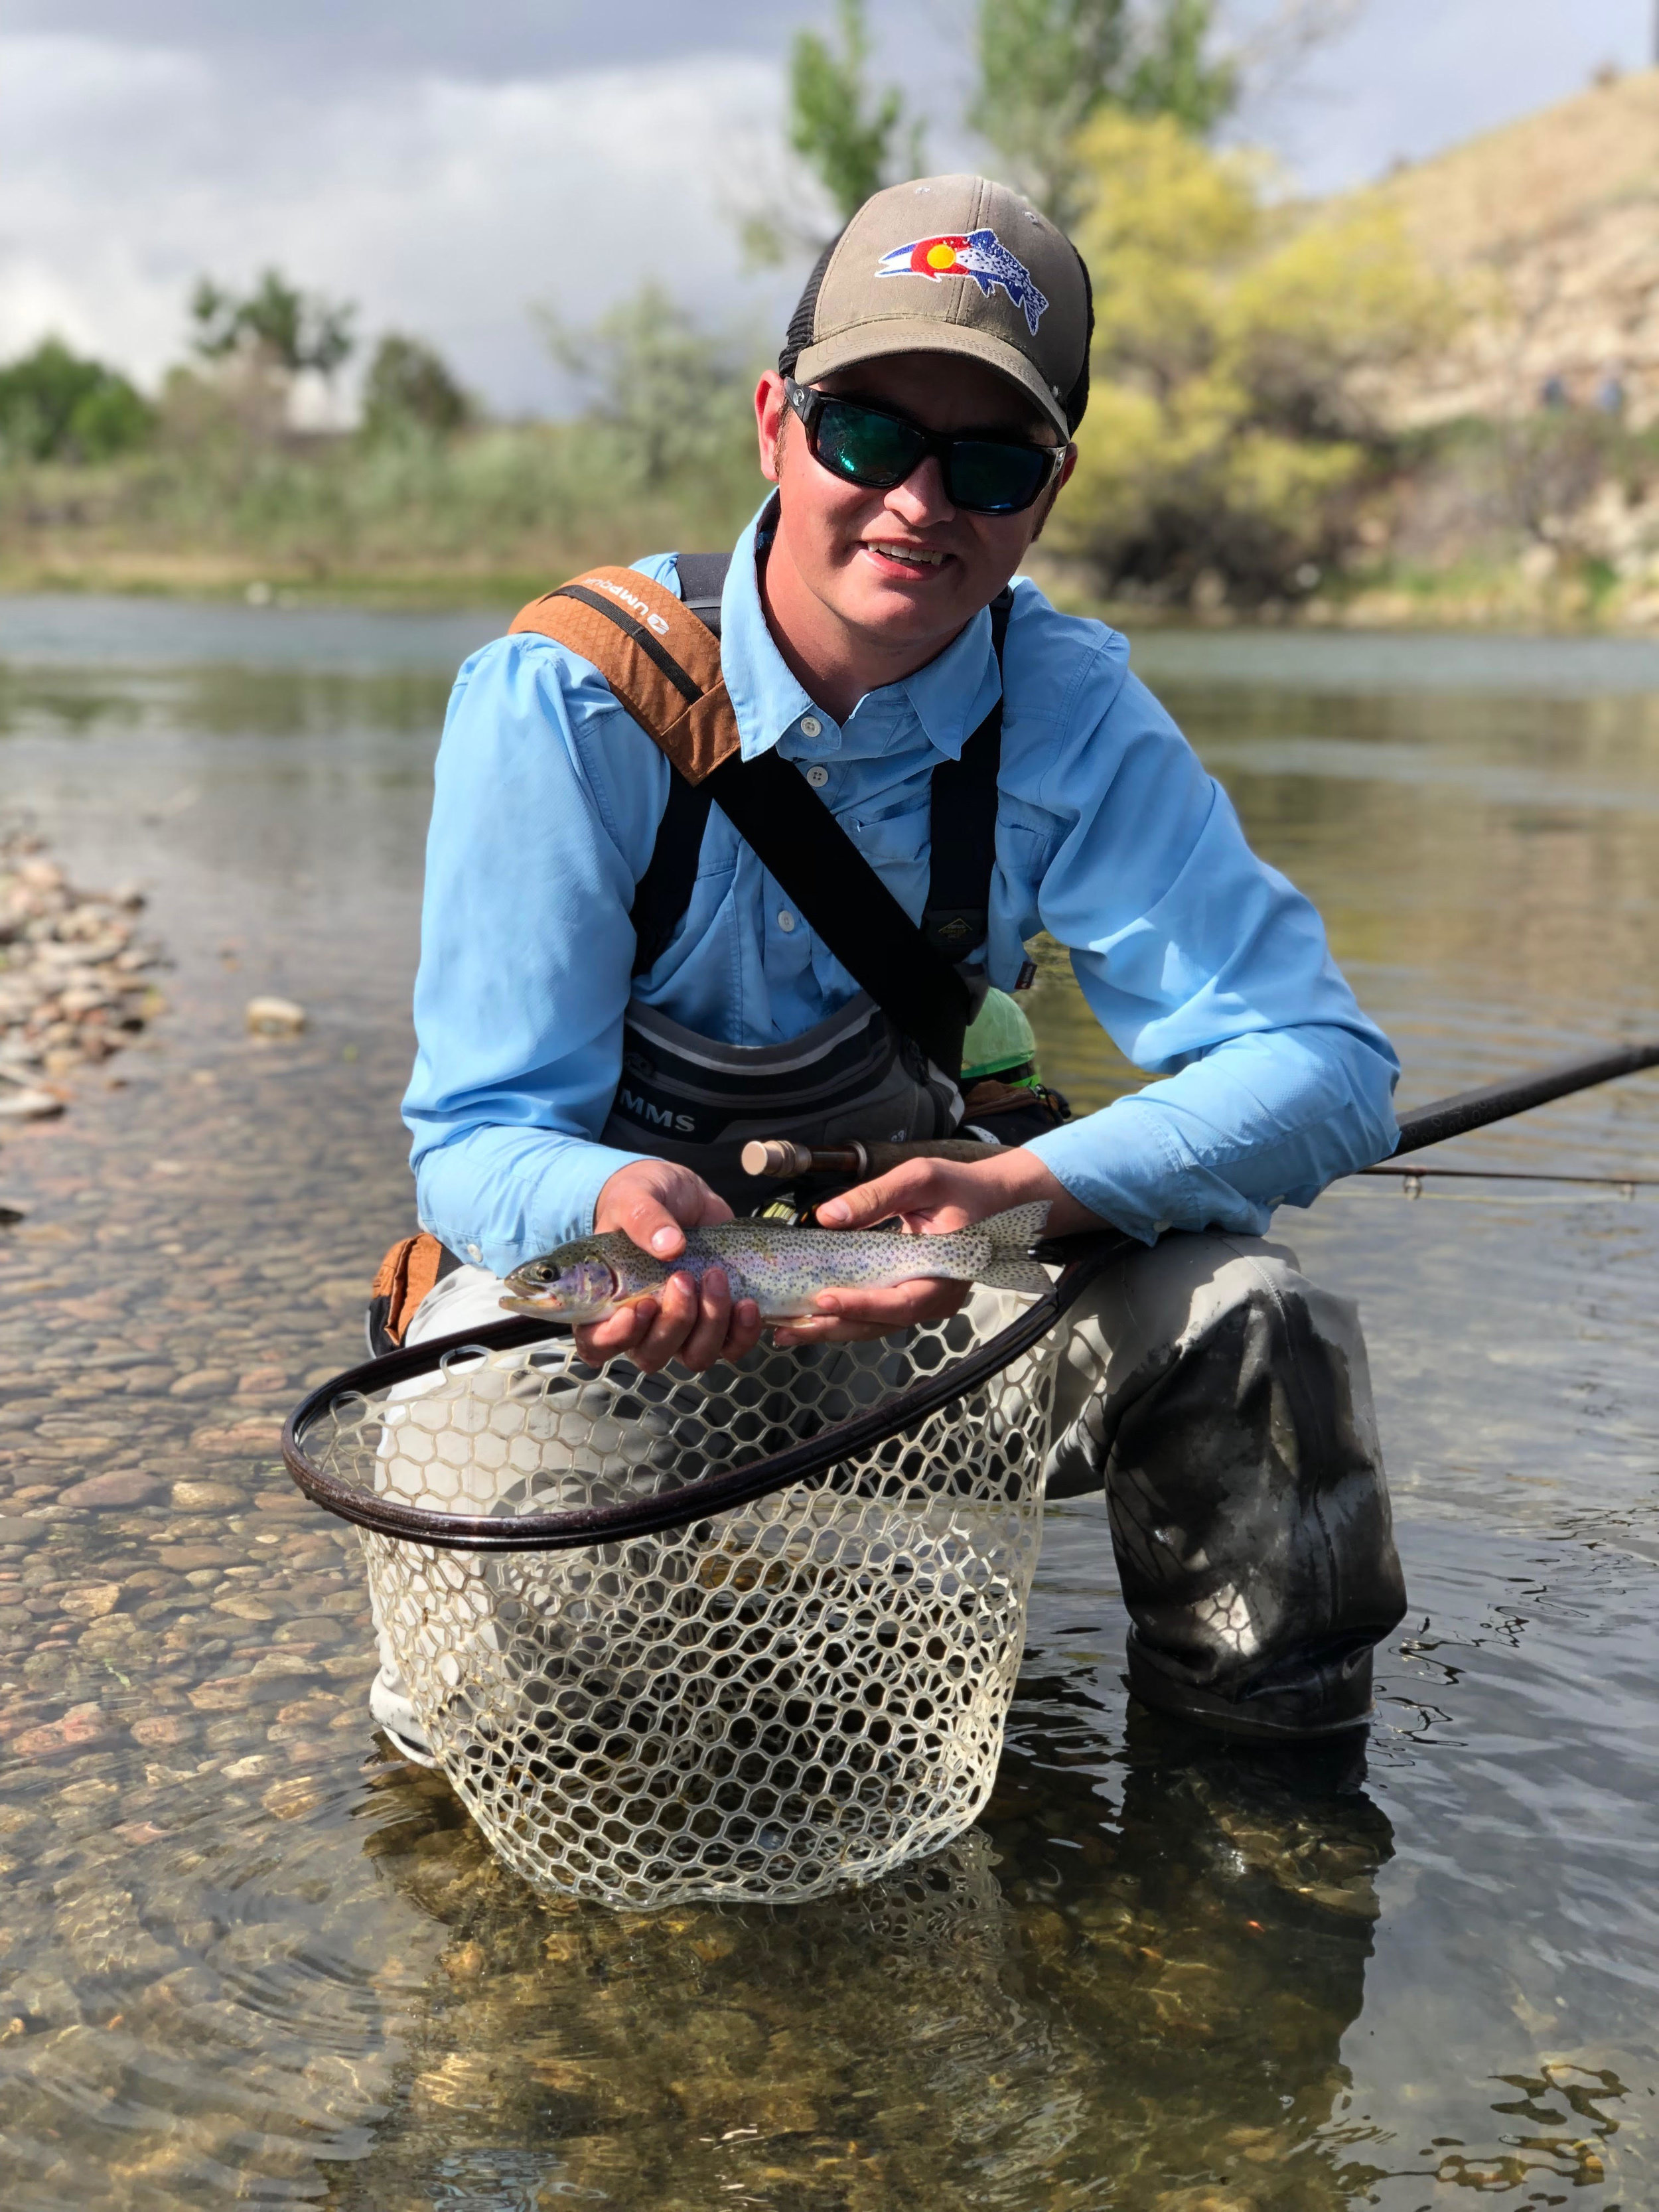 """Dustin Brewer  """"I am a Colorado native and grew up south east of Denver in a small town. I have been fishing and hunting my whole life. Fly fishing really became my passion after the last few years and I'm mostly self taught. I get out in the mountains and find new places to fish every chance I get, and when I'm not fishing I'm trying to tie new patterns and become a better fly tier. I really enjoy sharing my passion with other people and am very excited to help and teach more kids."""""""